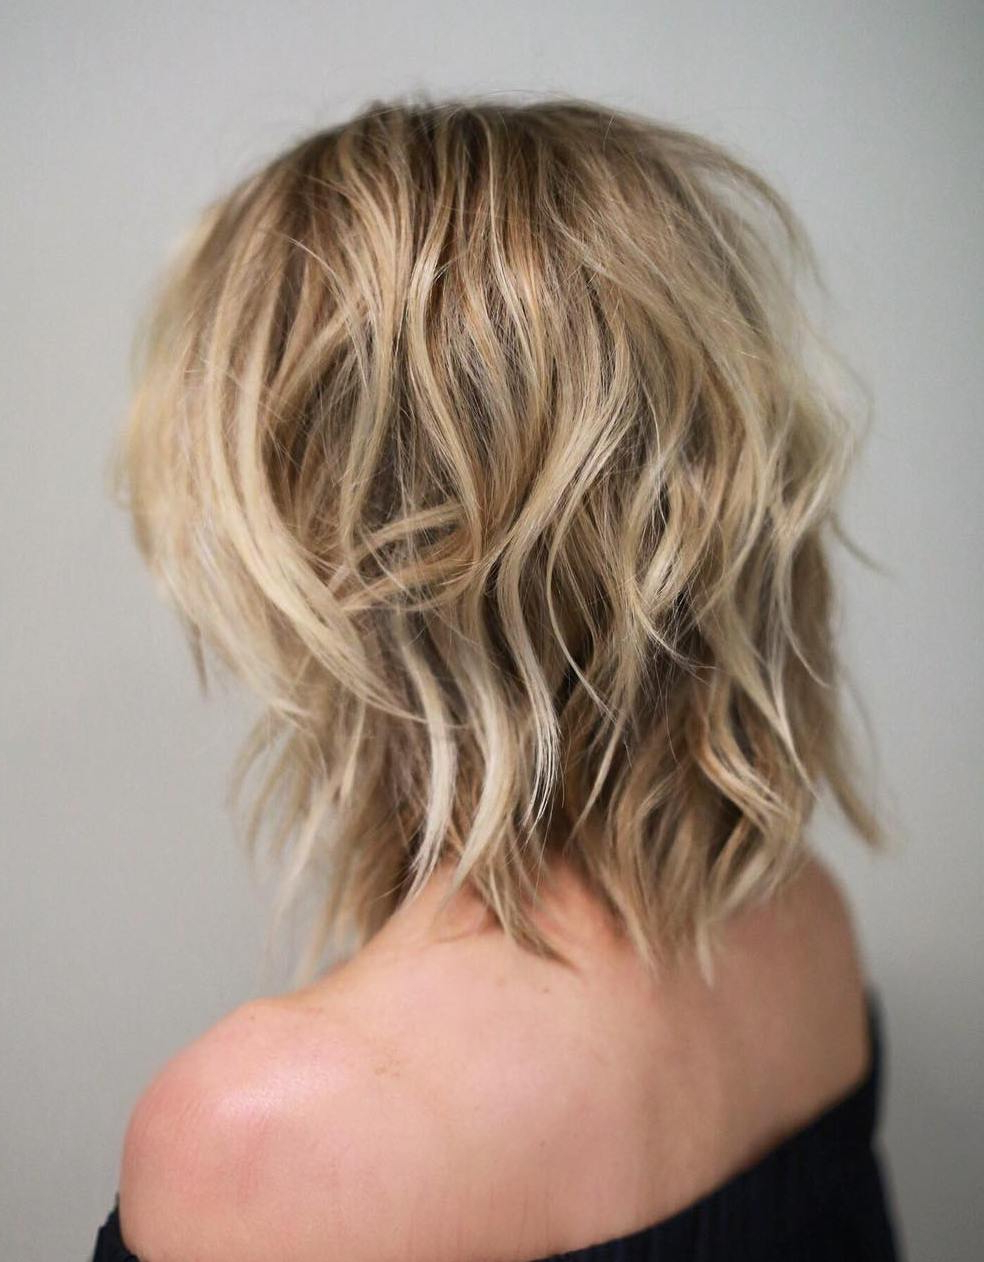 Shag Haircuts And Hairstyles In 2019 — Therighthairstyles With Short Shag Bob Haircuts (View 15 of 20)